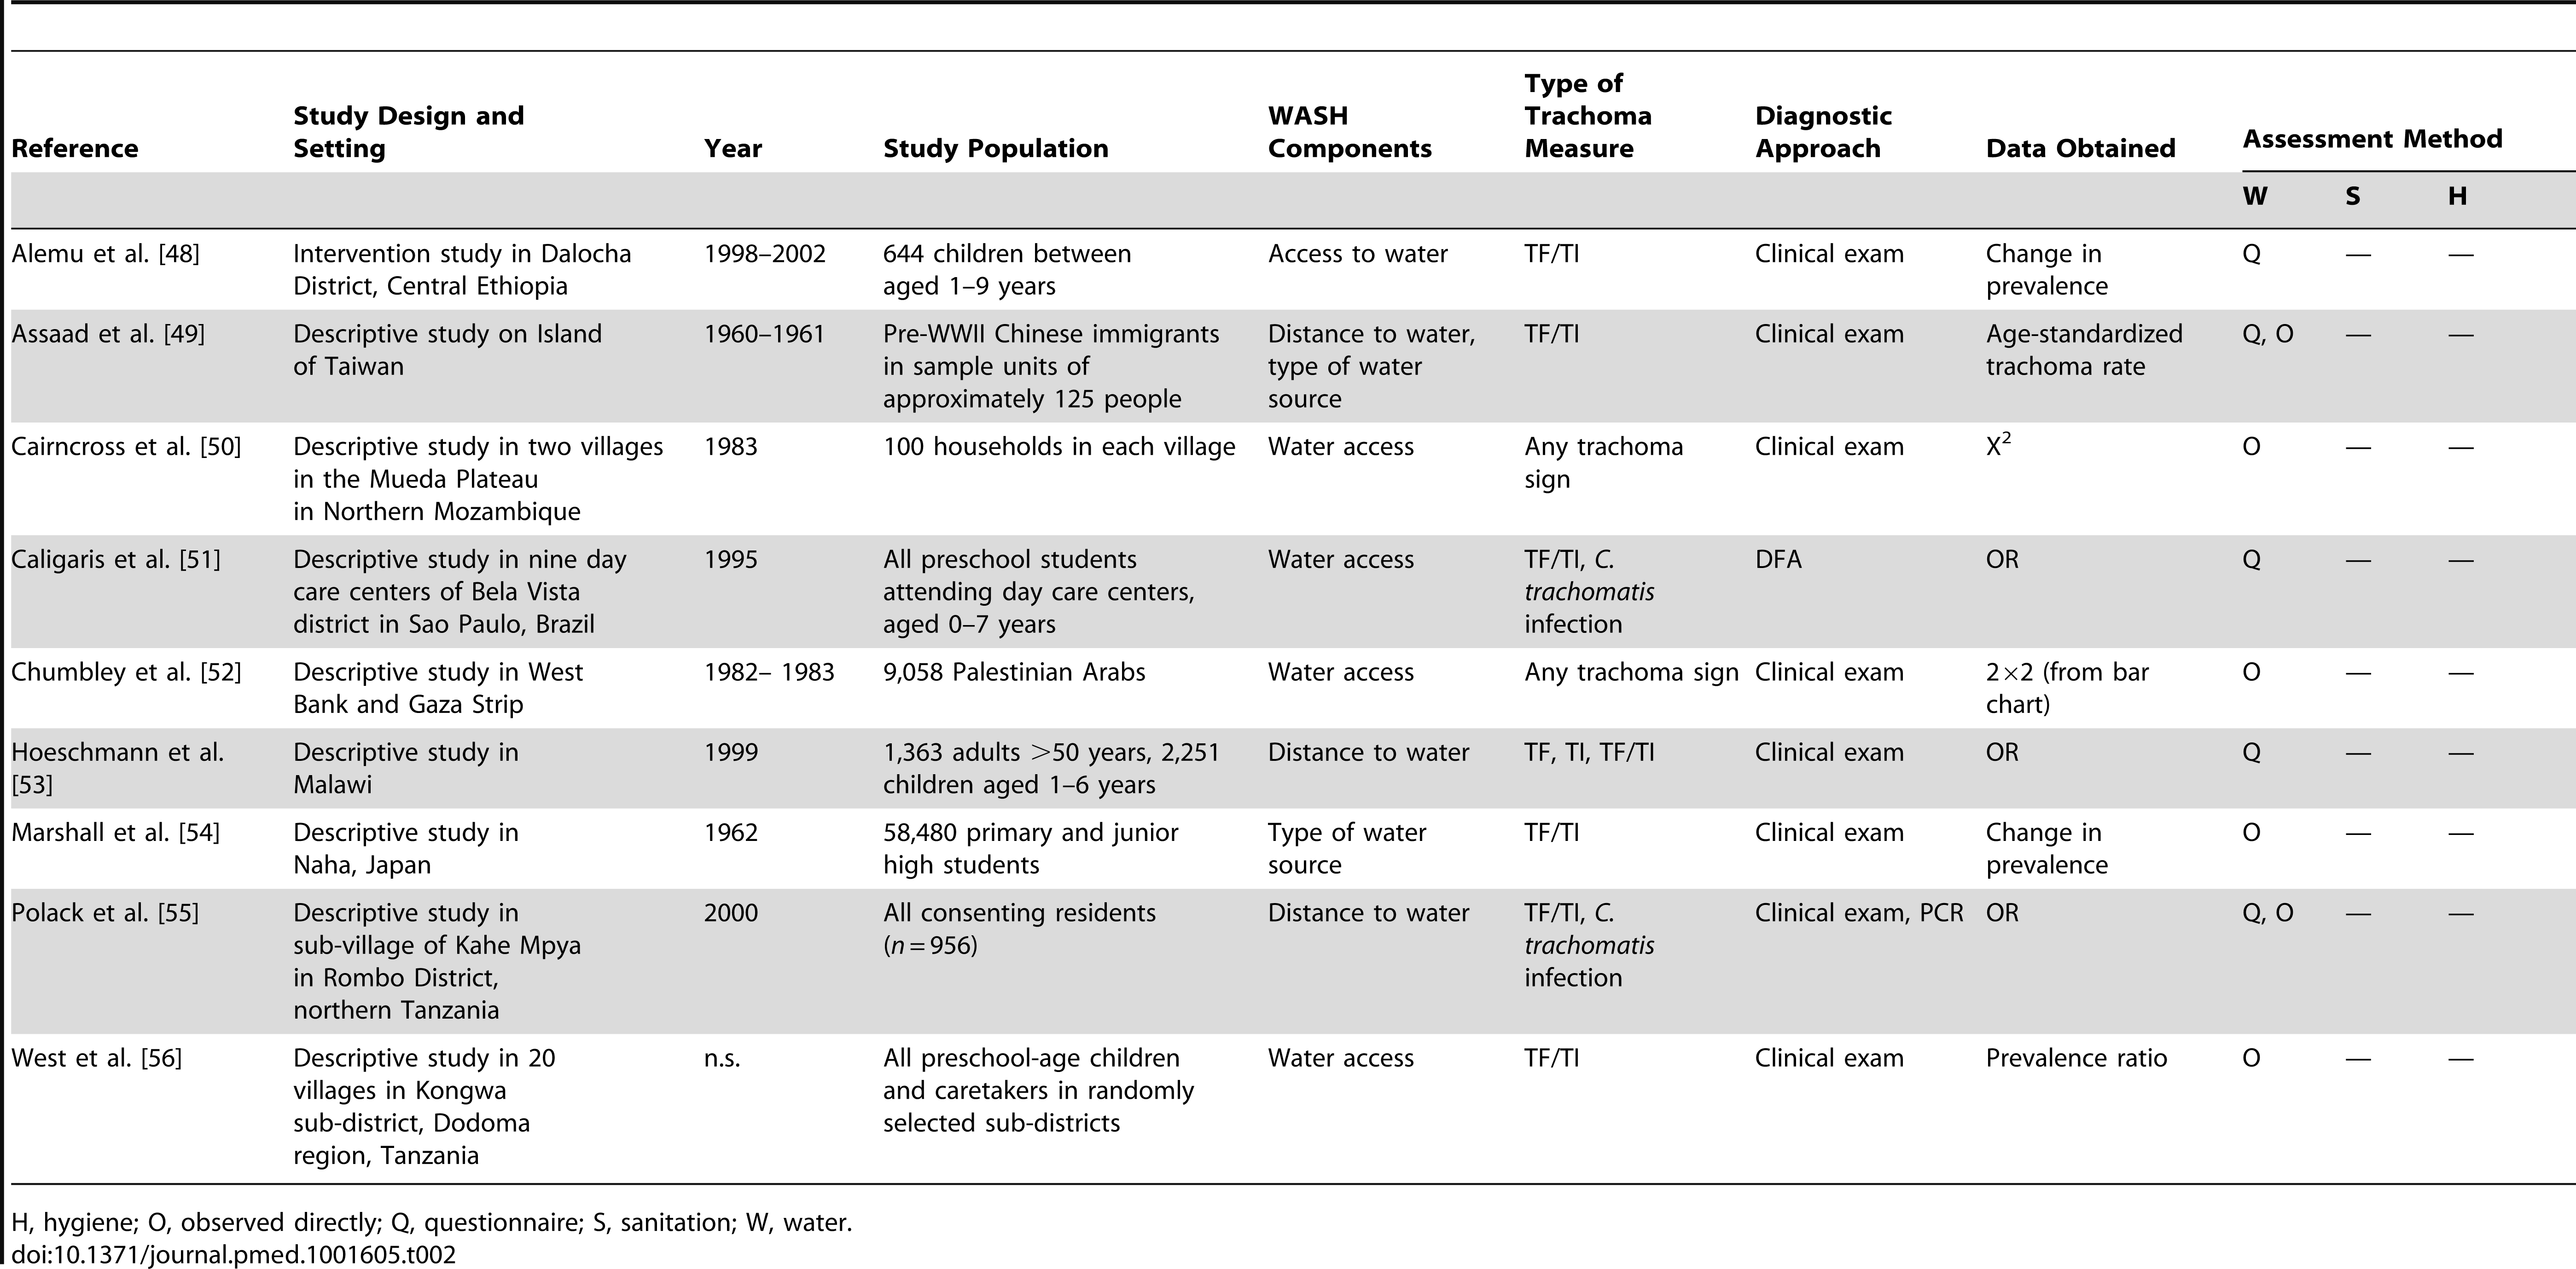 Summary of publications reporting only on water-related risk factors.